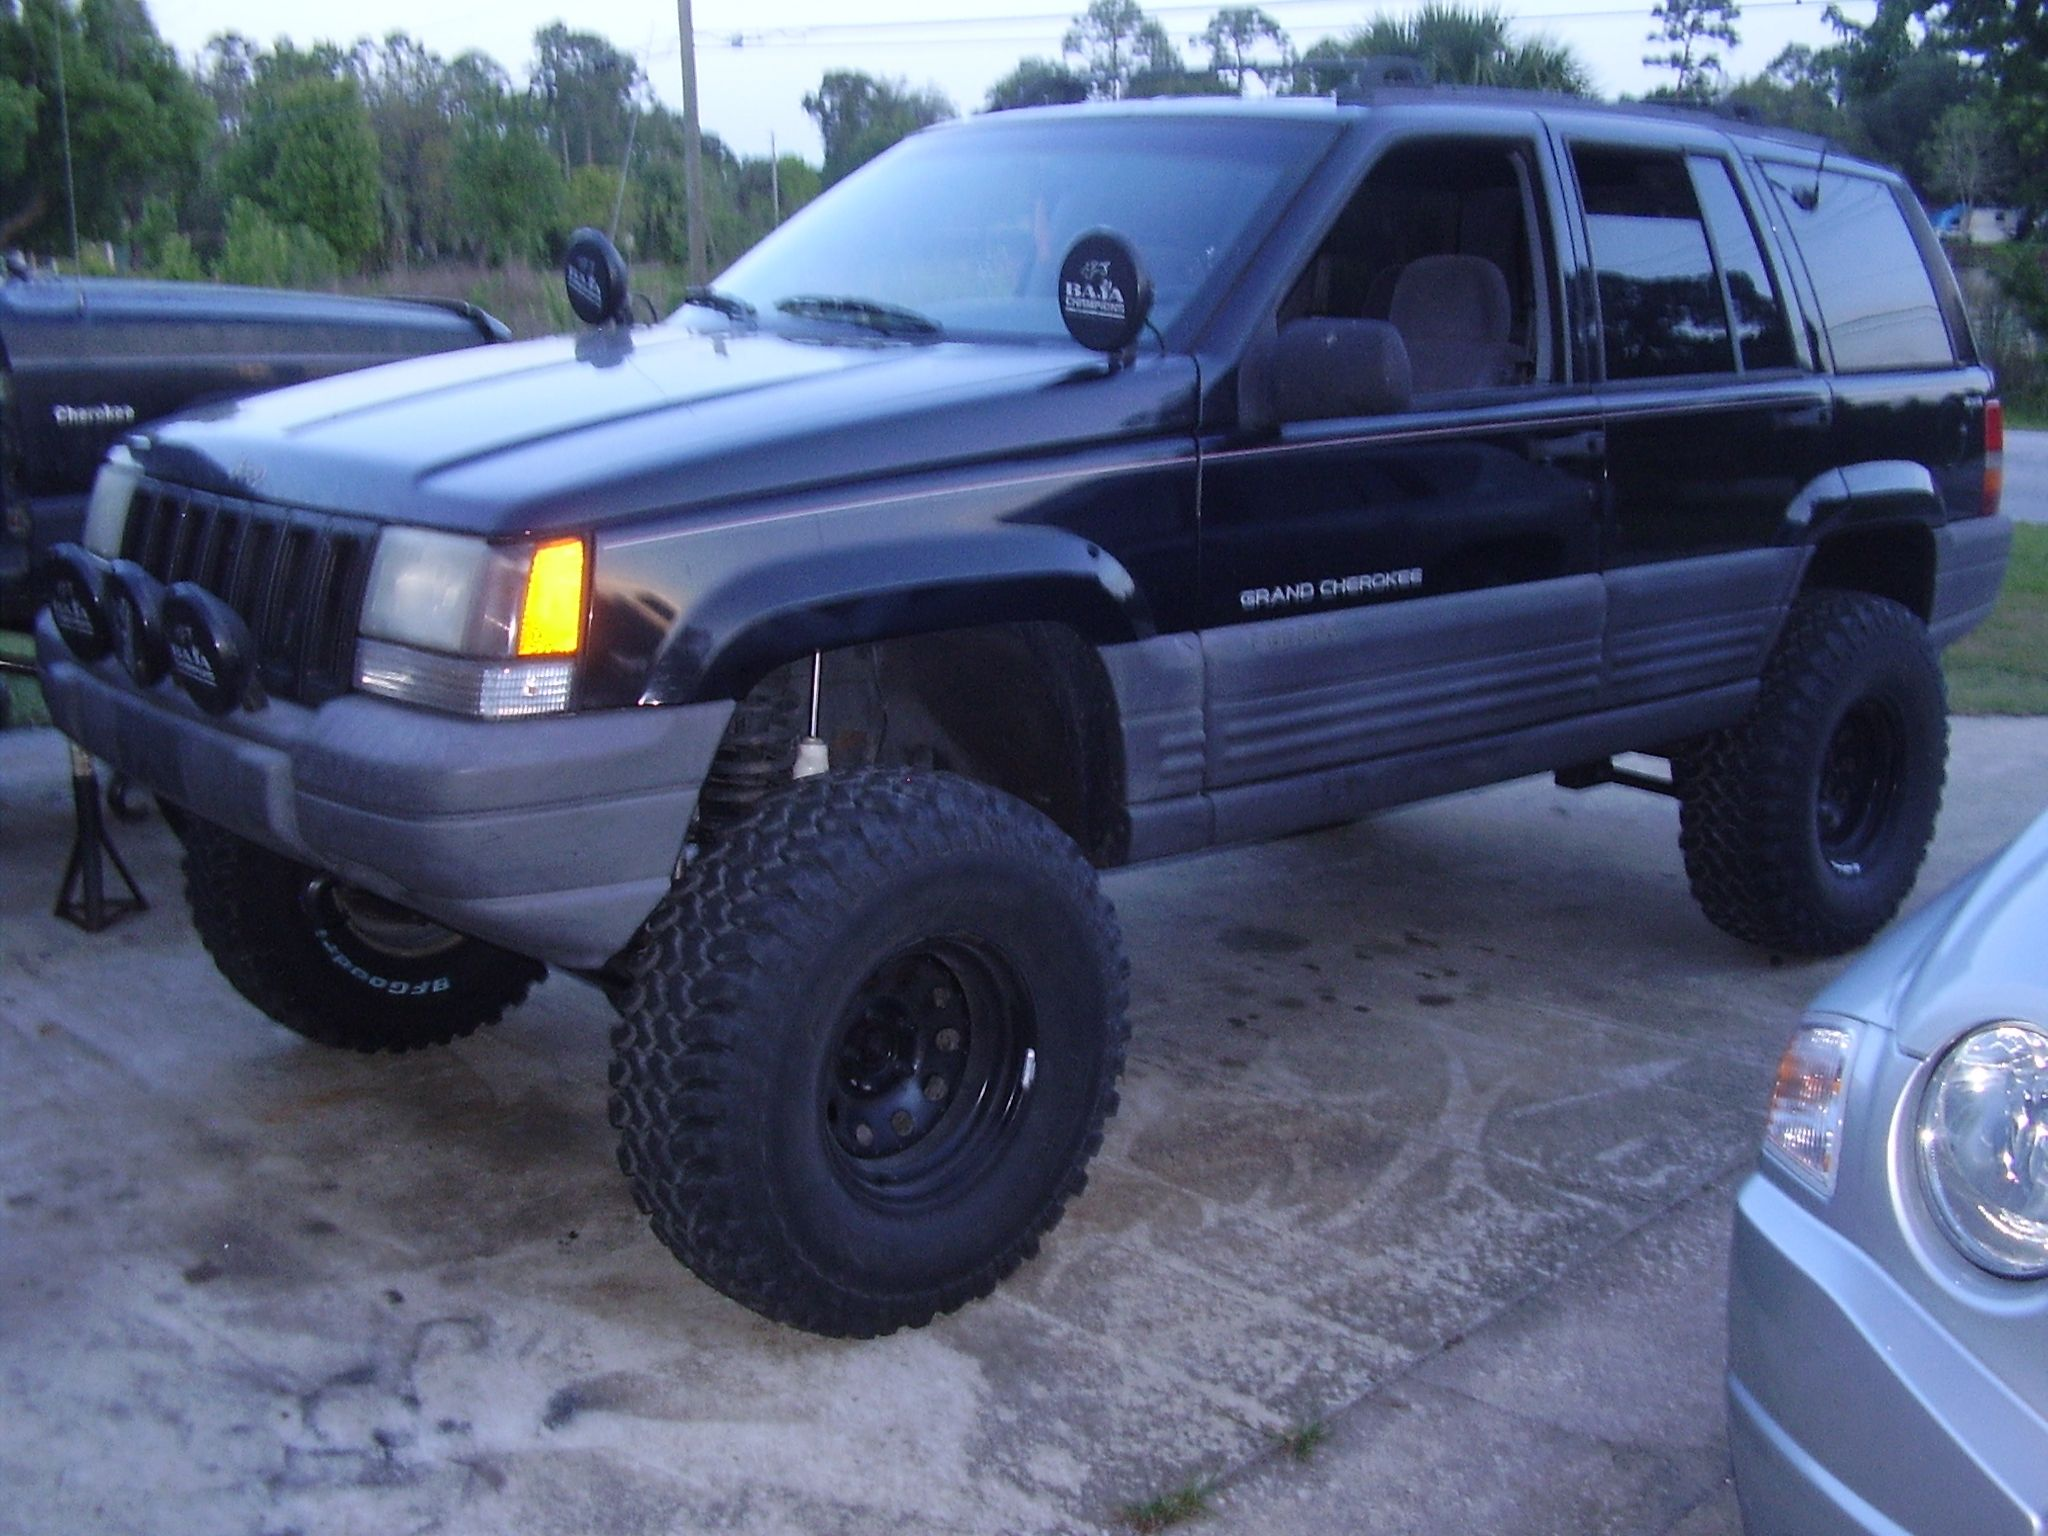 Check Out Jhc76 1998 Jeep Grand Cherokee In Chuluotafl For Ride Laredo Specification Modification Info And Photos Follow Jhc76s